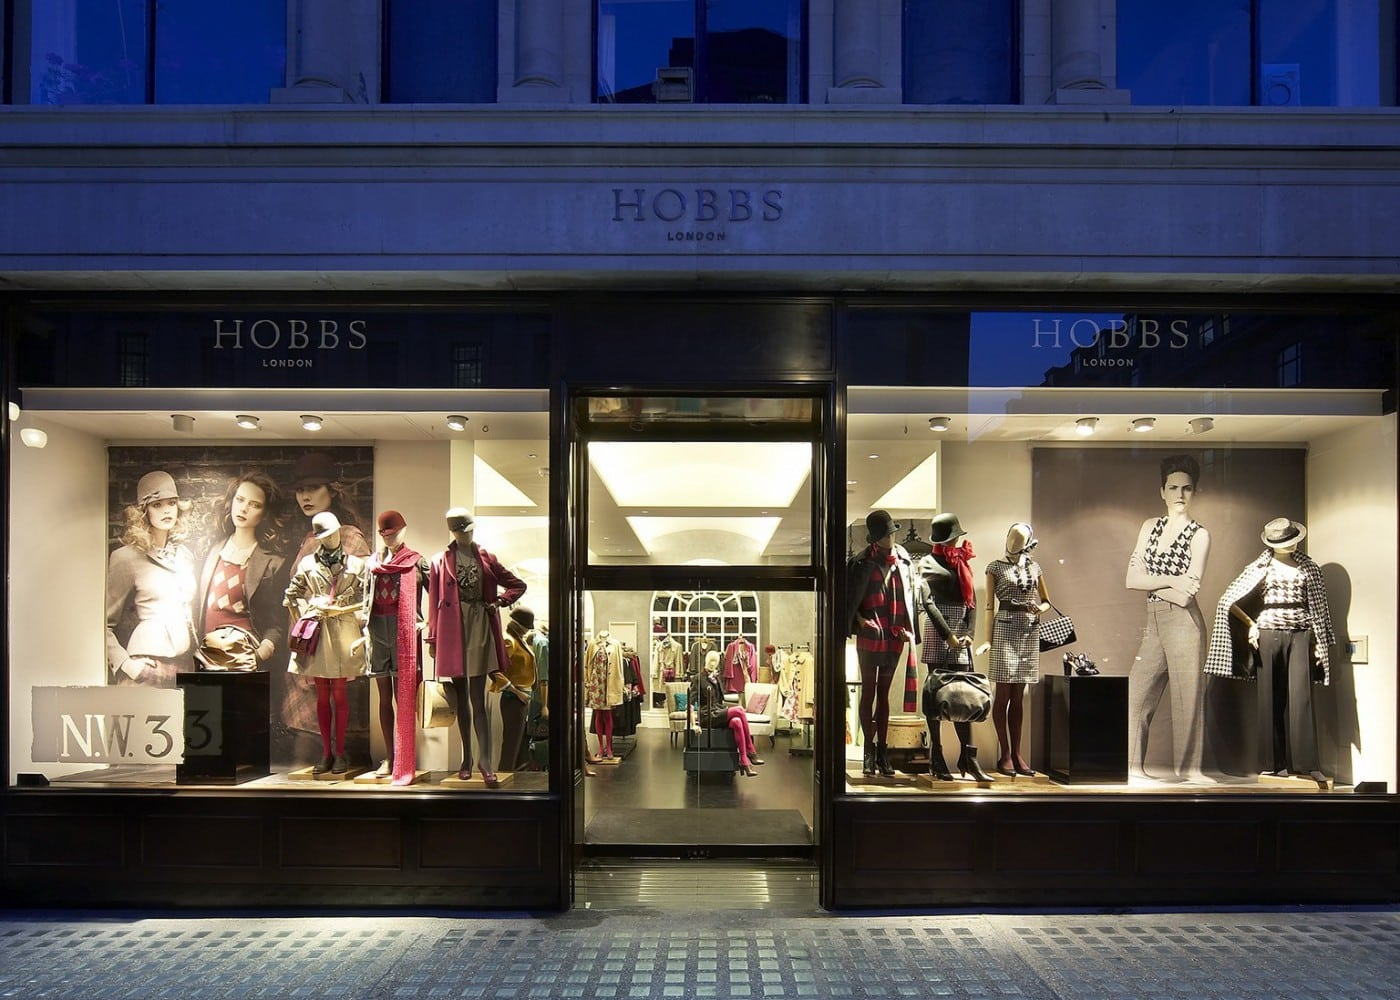 retail lighting design: Hobbs Regent Street exterior